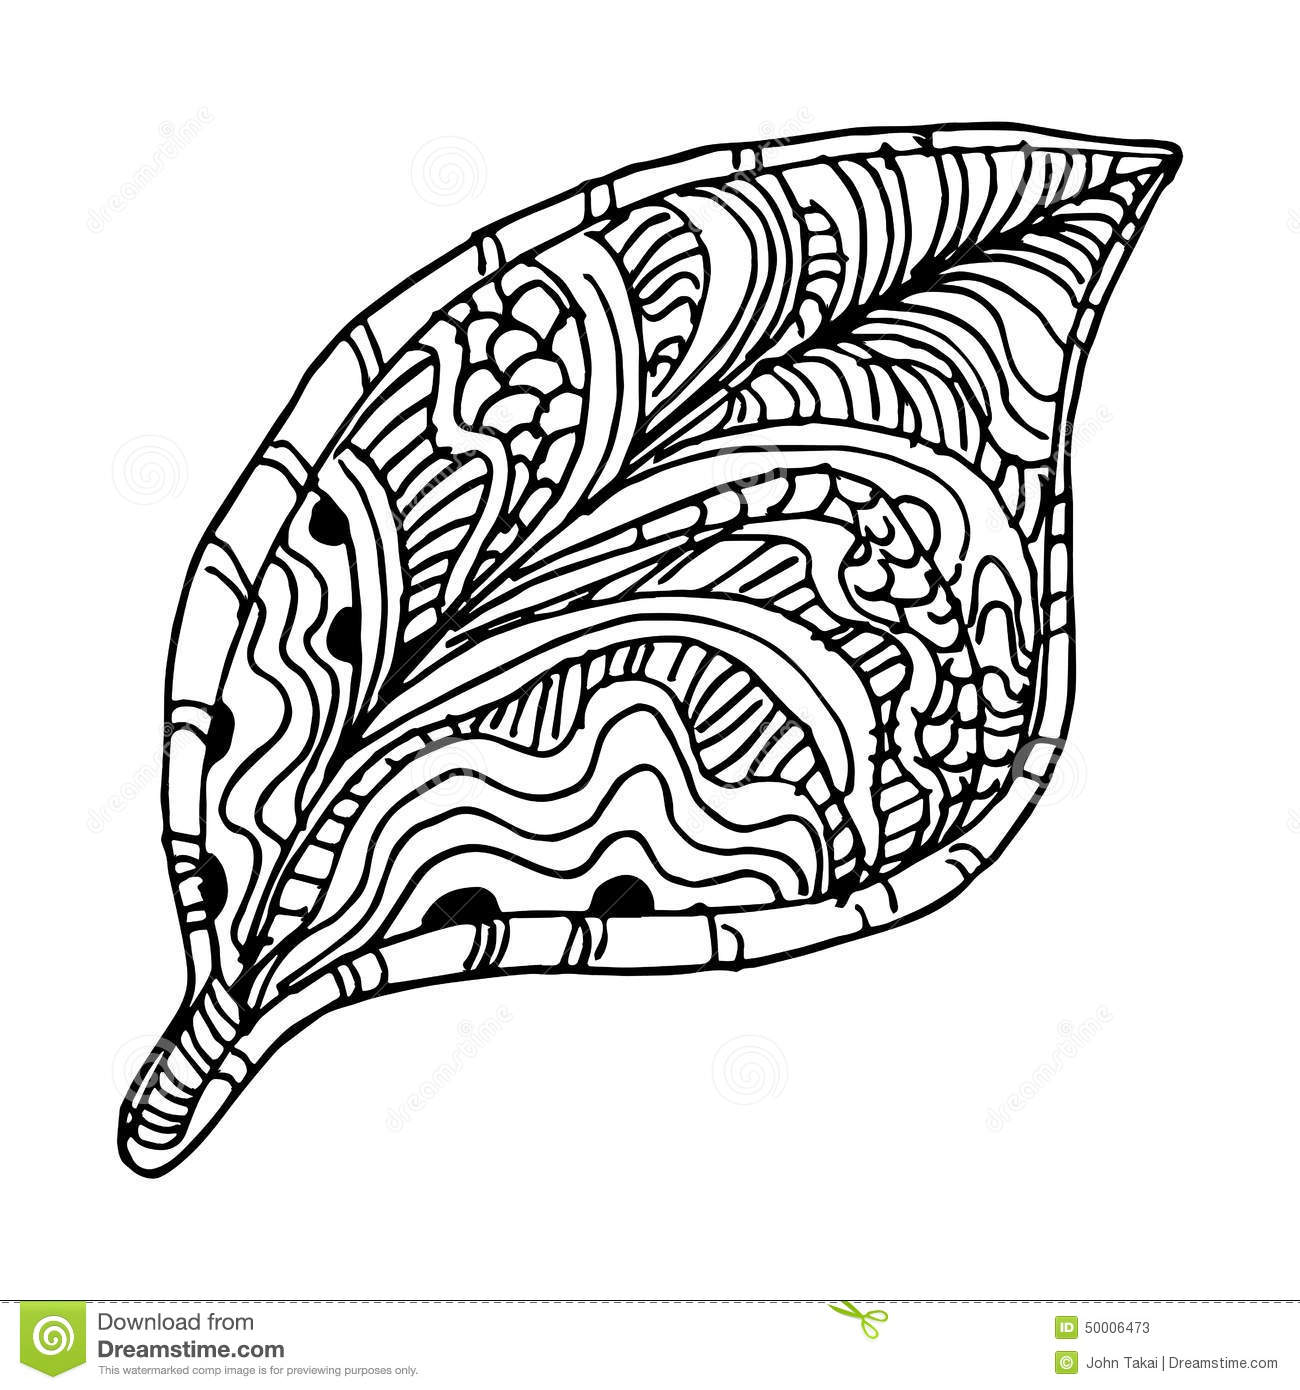 An image of a tree leaf zentangle style mr no pr no 0 591 0